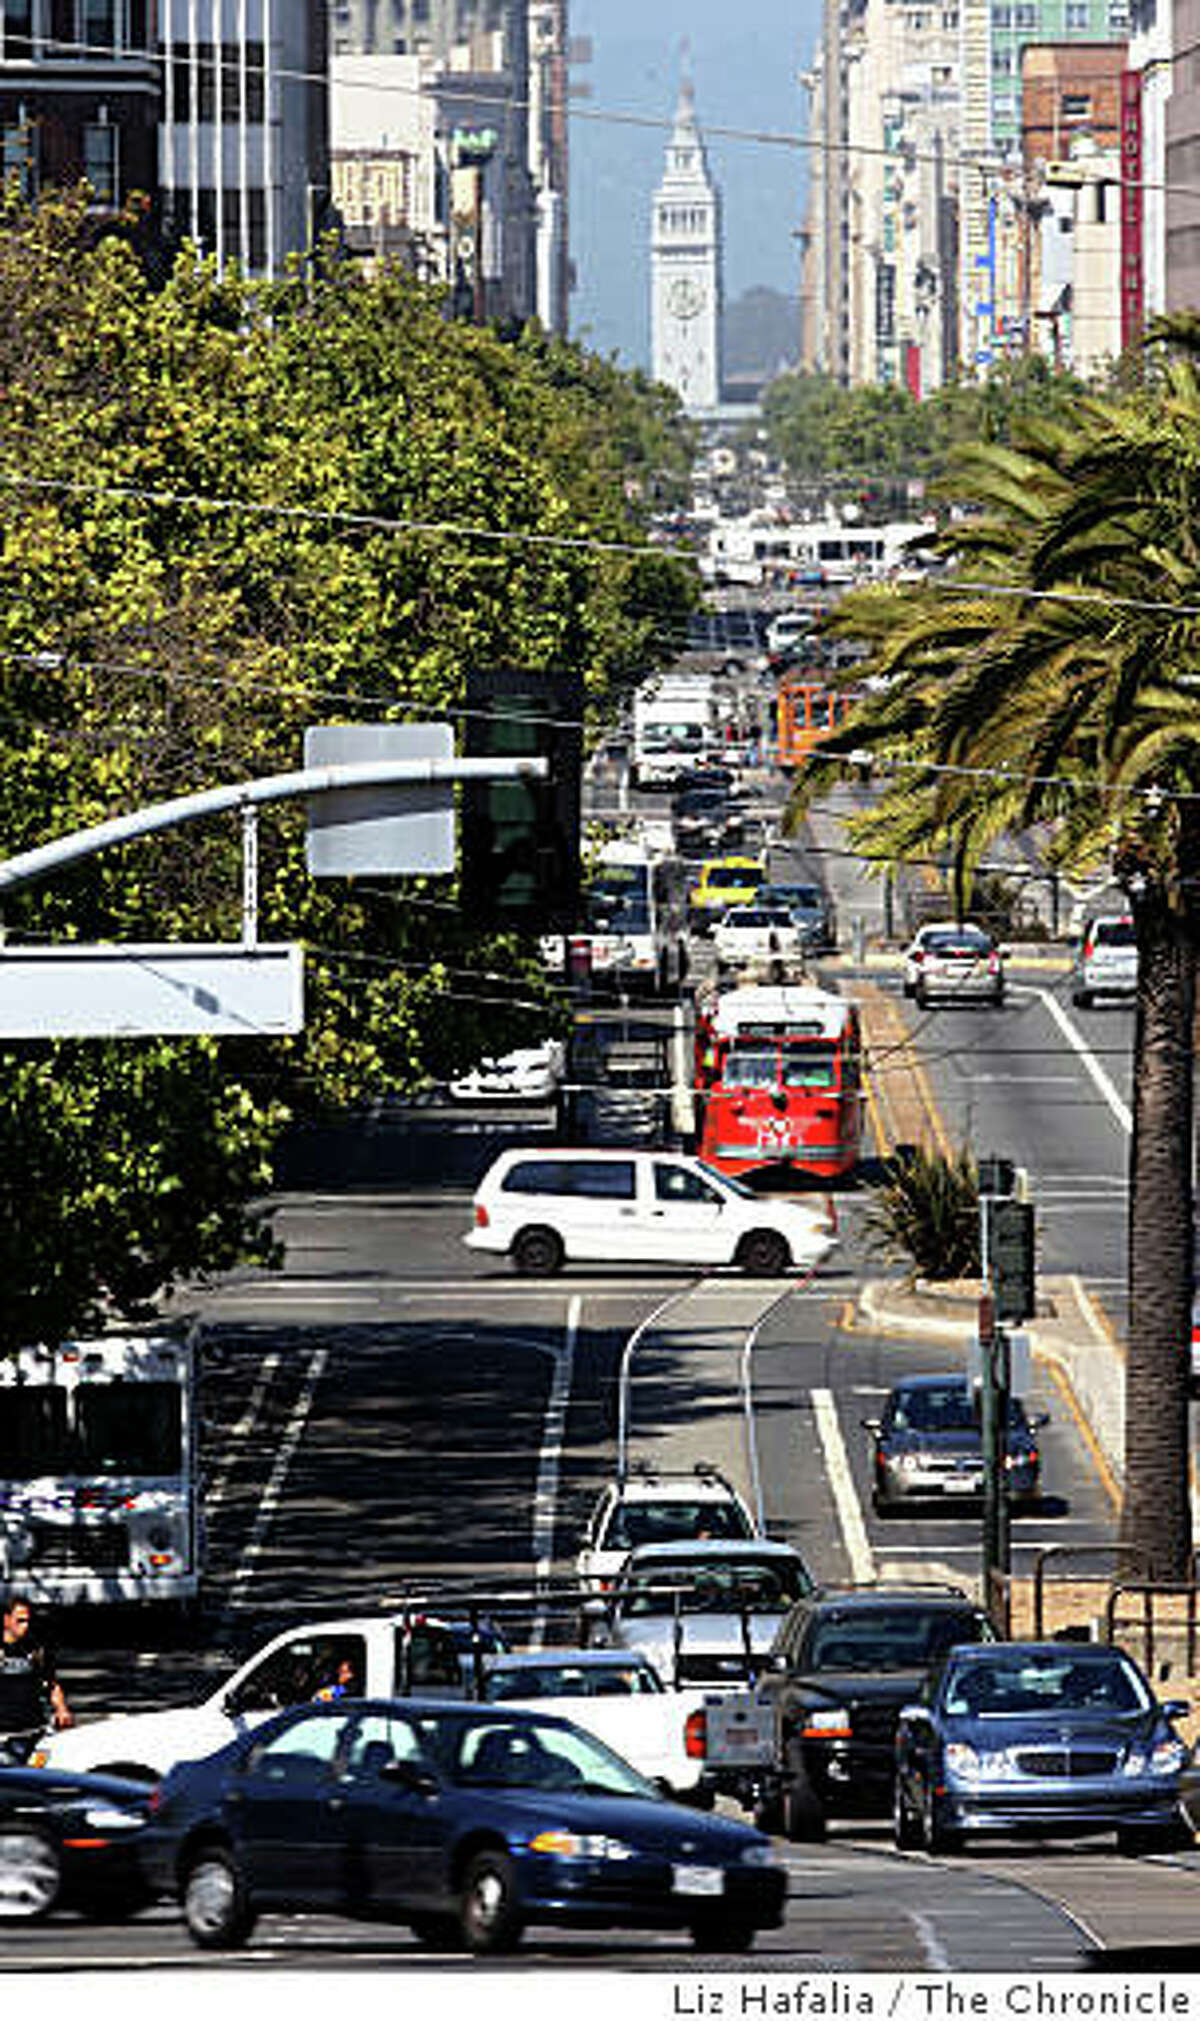 Supervisor Chris Daly asked the city attorney to draft legislation to permanently ban cars on Market Street between Octavia Boulevard and the Embarcadero. Afternoon traffic on Market Street looking past Octavia Boulevard in San Francisco, Calif., on Wednesday, July 23, 2008.